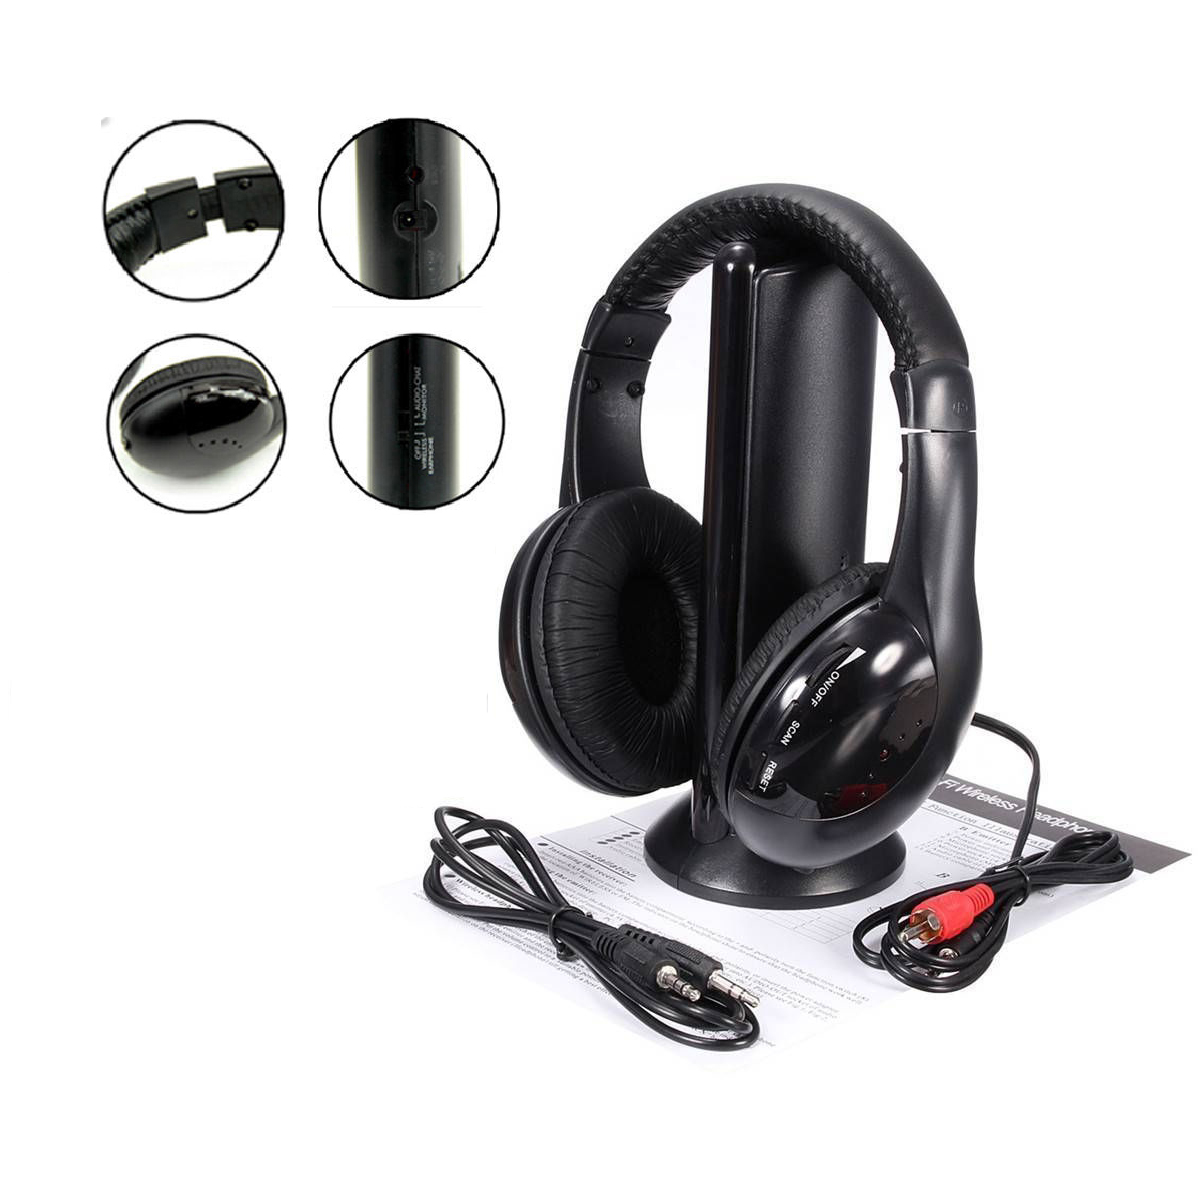 iMeshbean Hot 5 in 1 Hi-Fi Wireless Headset Headphone Earphone for TV DVD MP3 PC